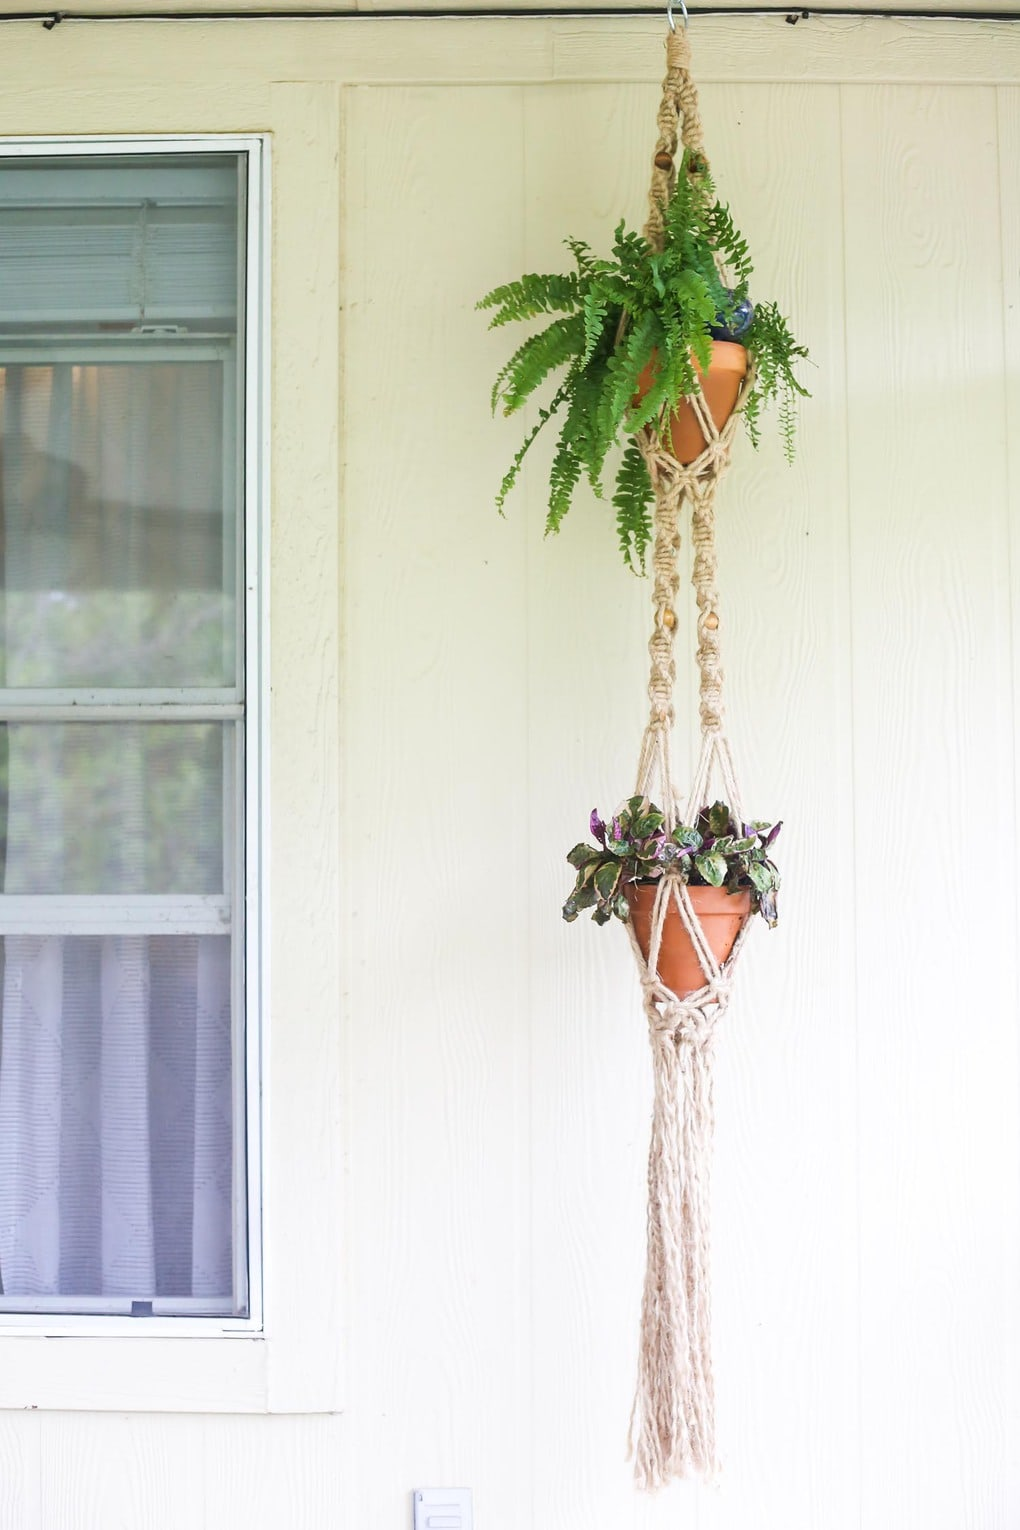 Hanging macrame planter with two plants